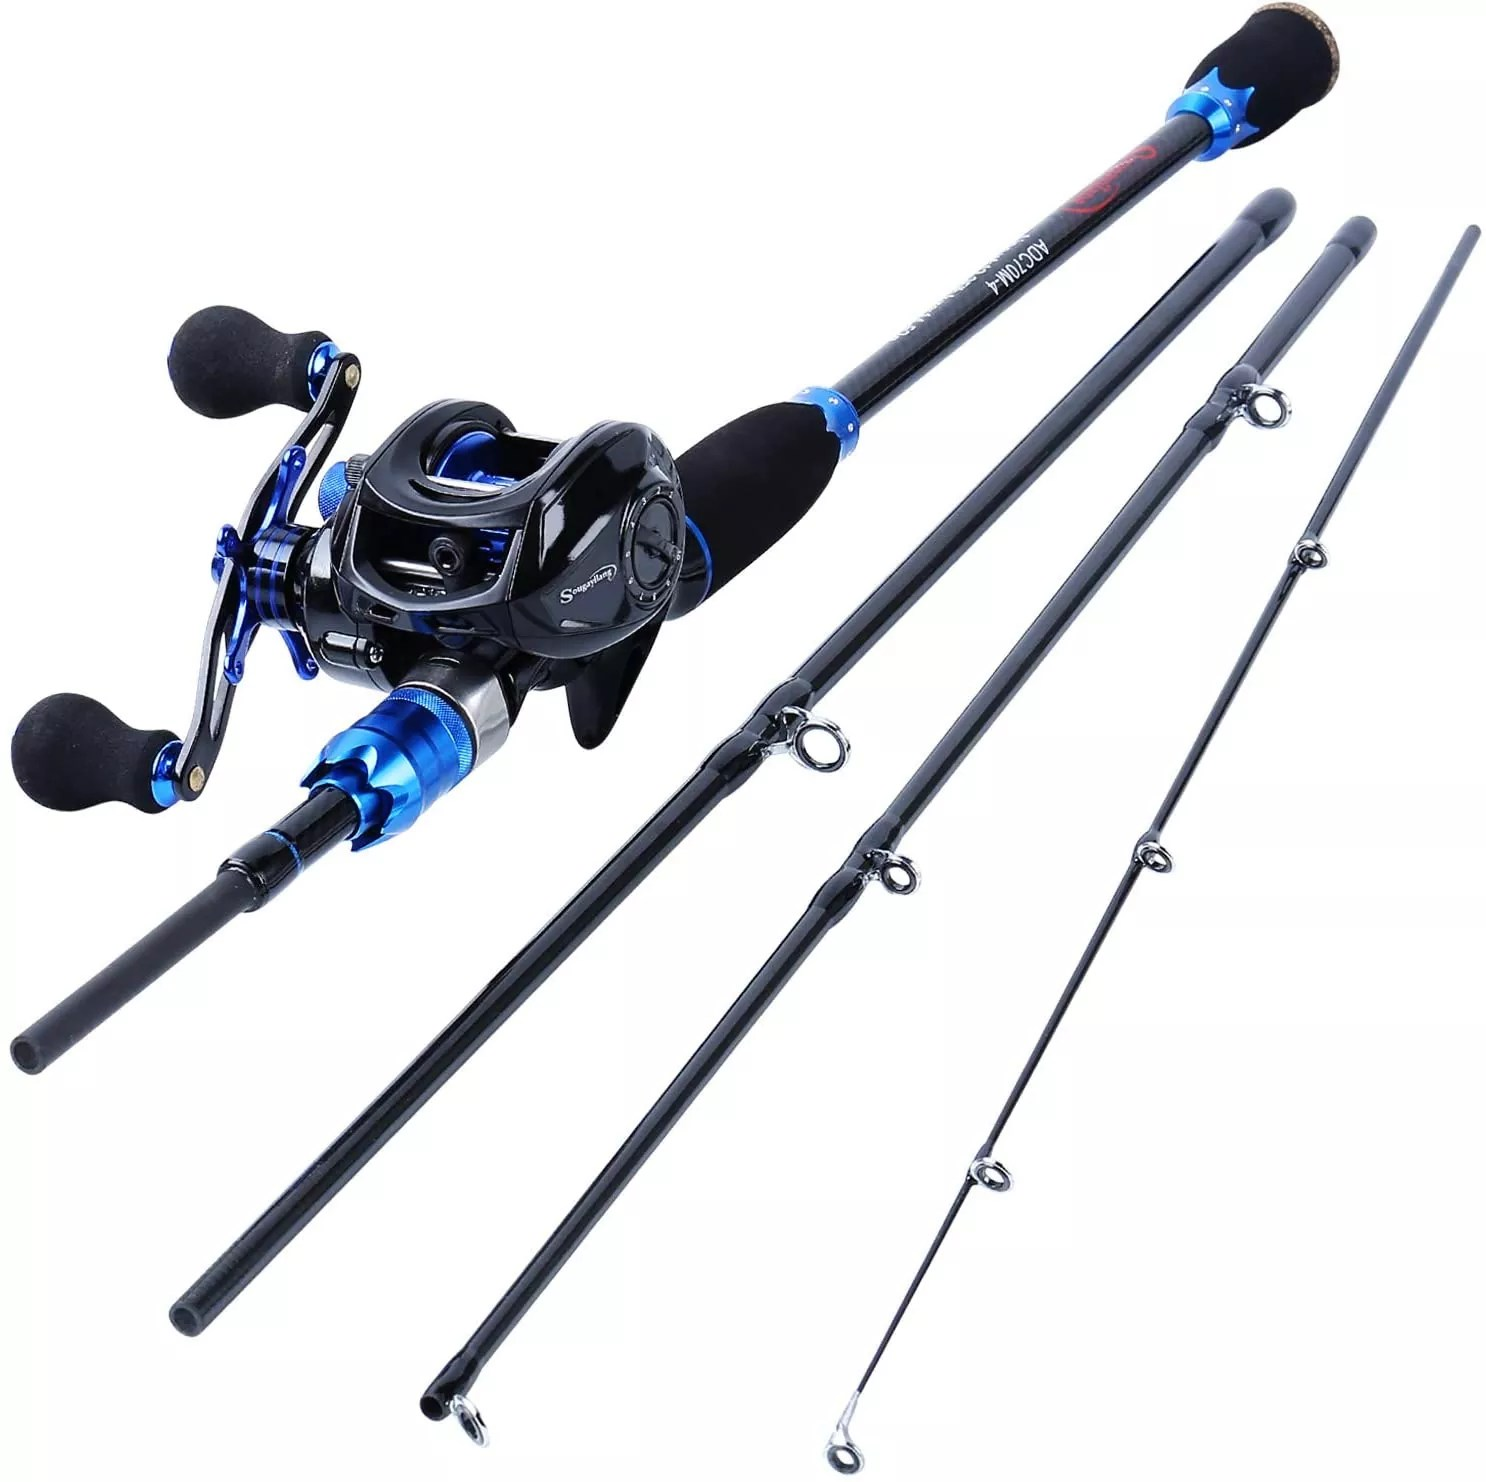 Sougayilang Fishing Rod and Reel Combos, Carbon Fiber Fishing Poles with Baitcasting Reel